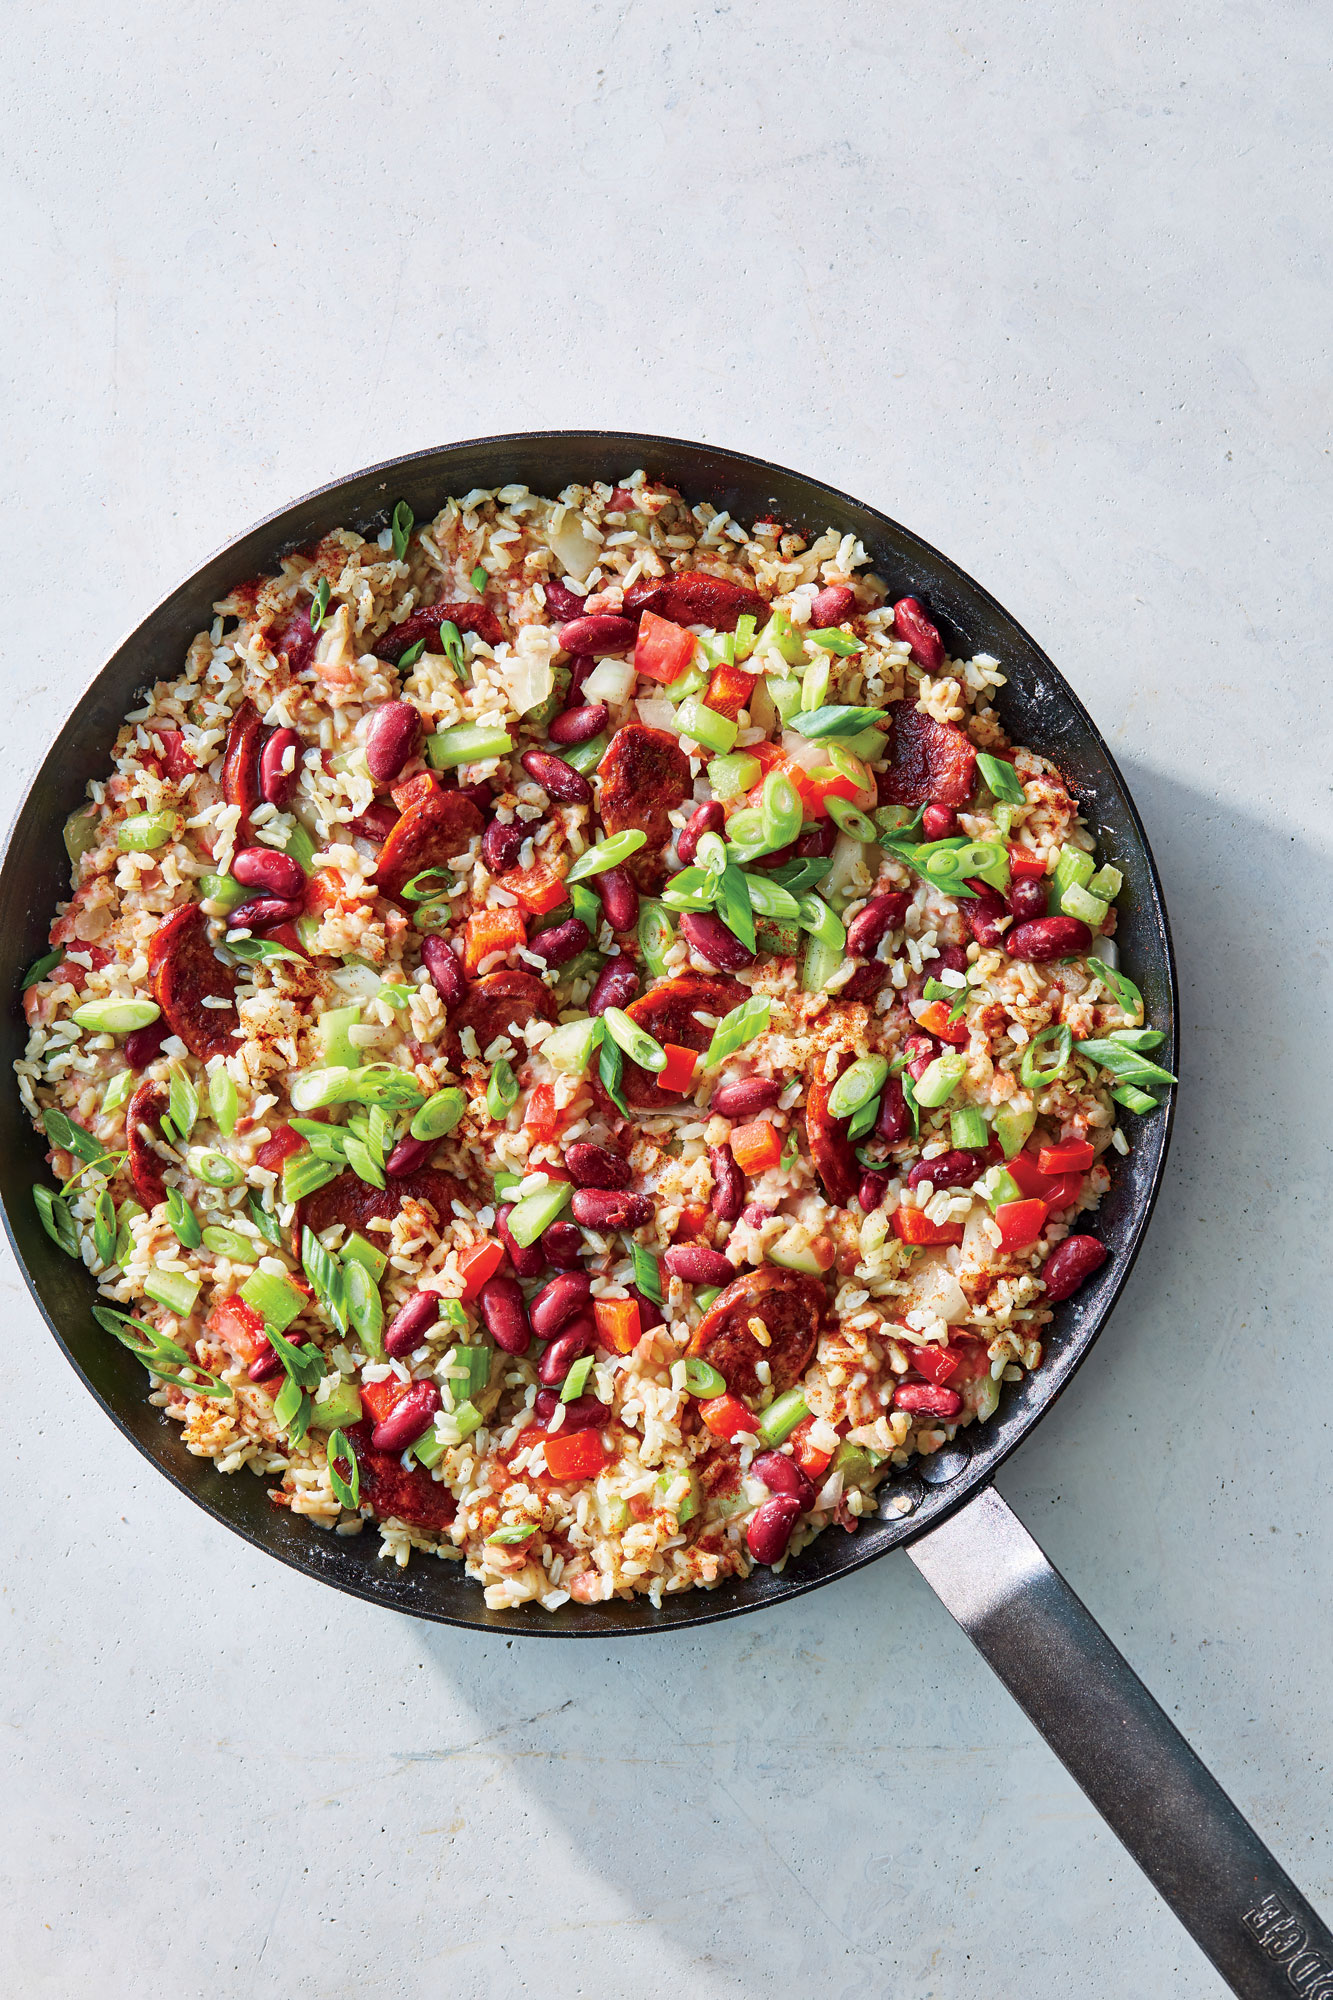 ck- Skillet Red Beans and Rice